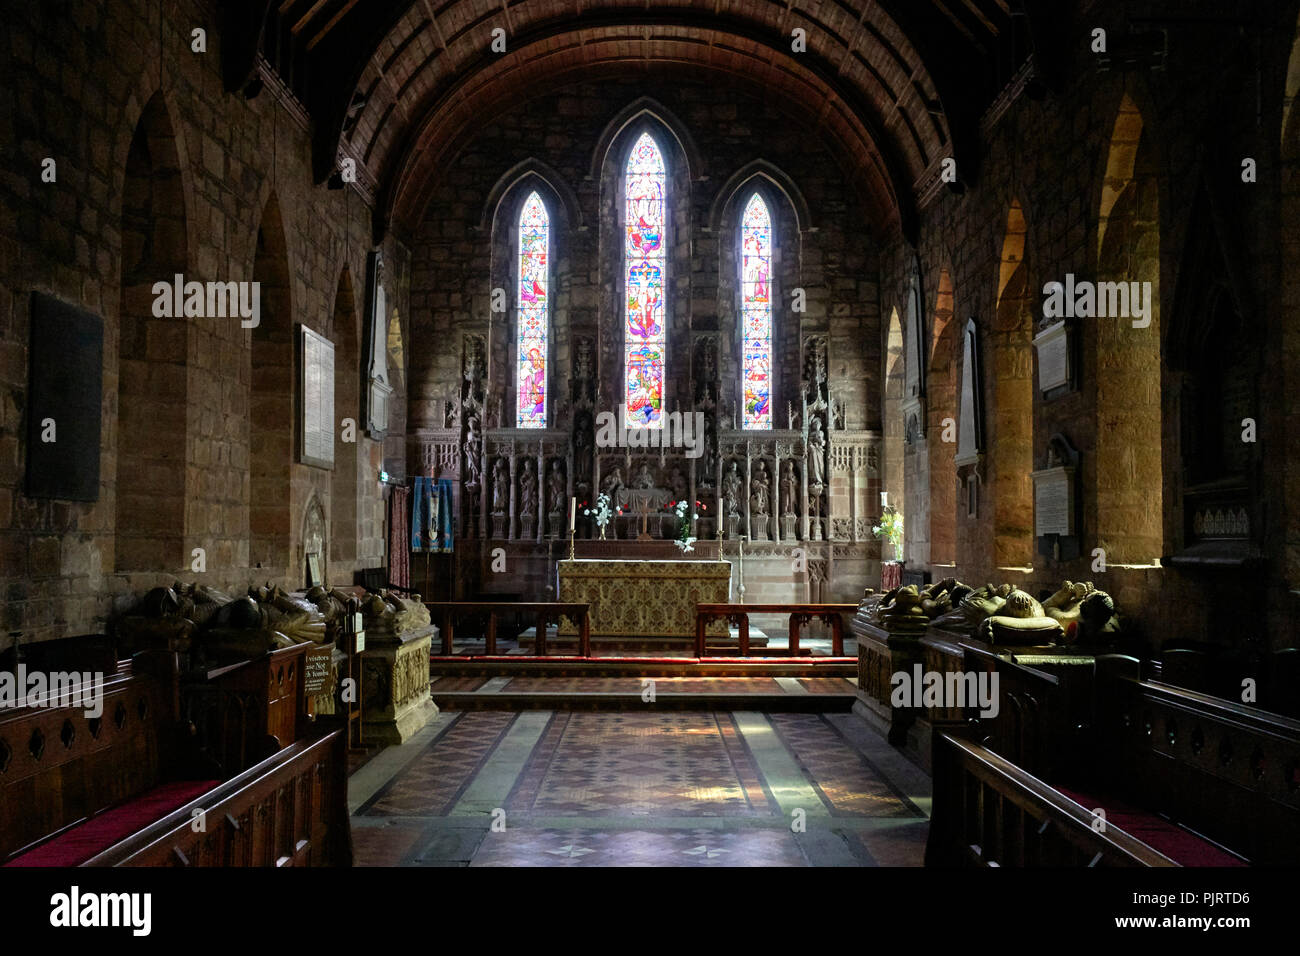 St Mary the Virgin and St Chad church interior at Brewood with the Giffard family tombs - Stock Image